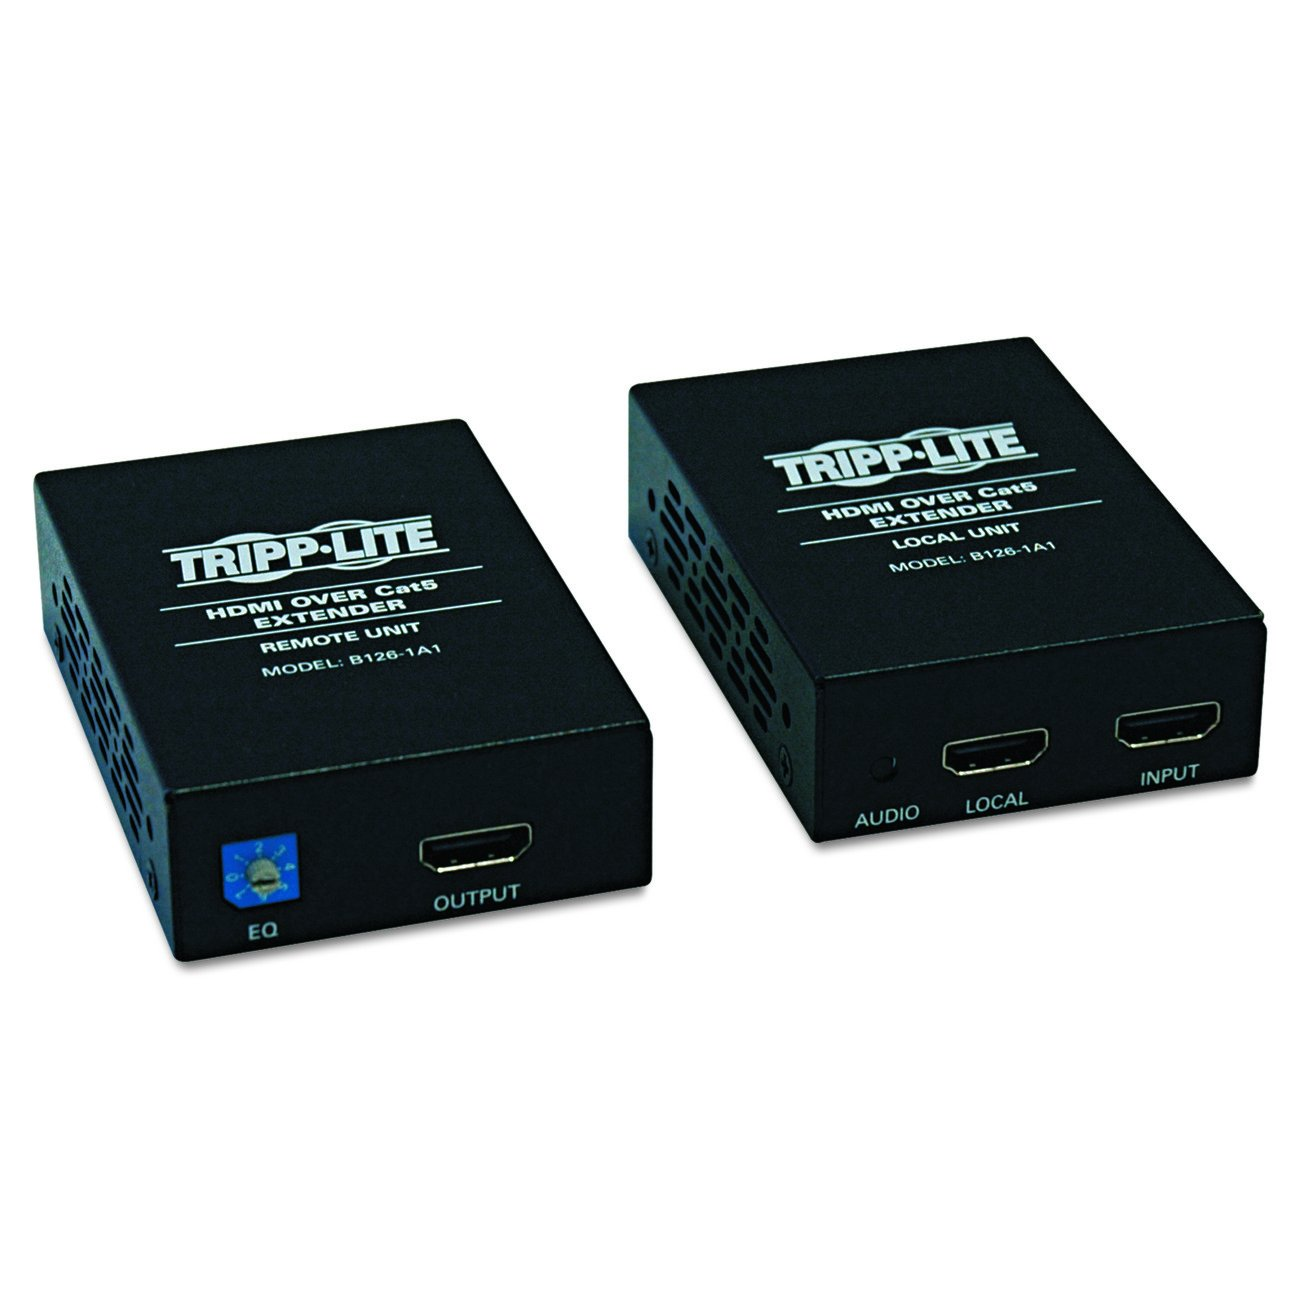 Tripp Lite HDMI Over Cat5 / Cat6 Extender, Extended Range Transmitter and Receiver for Video and Audio 1920x1200 1080p at 60Hz(B126-1A1) by Tripp Lite